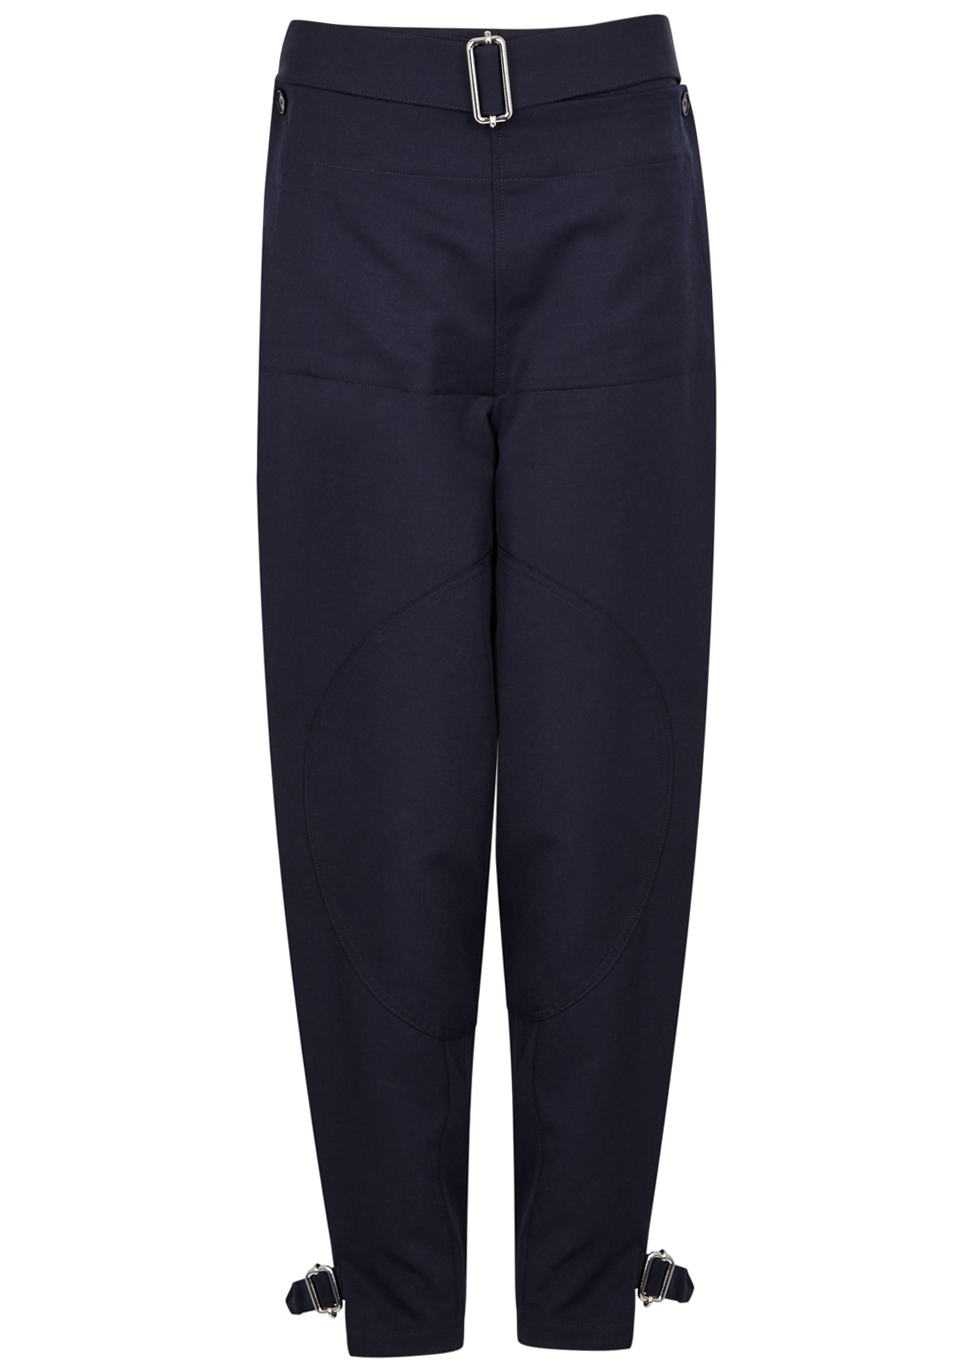 J.W.ANDERSON NAVY WOOL TROUSERS